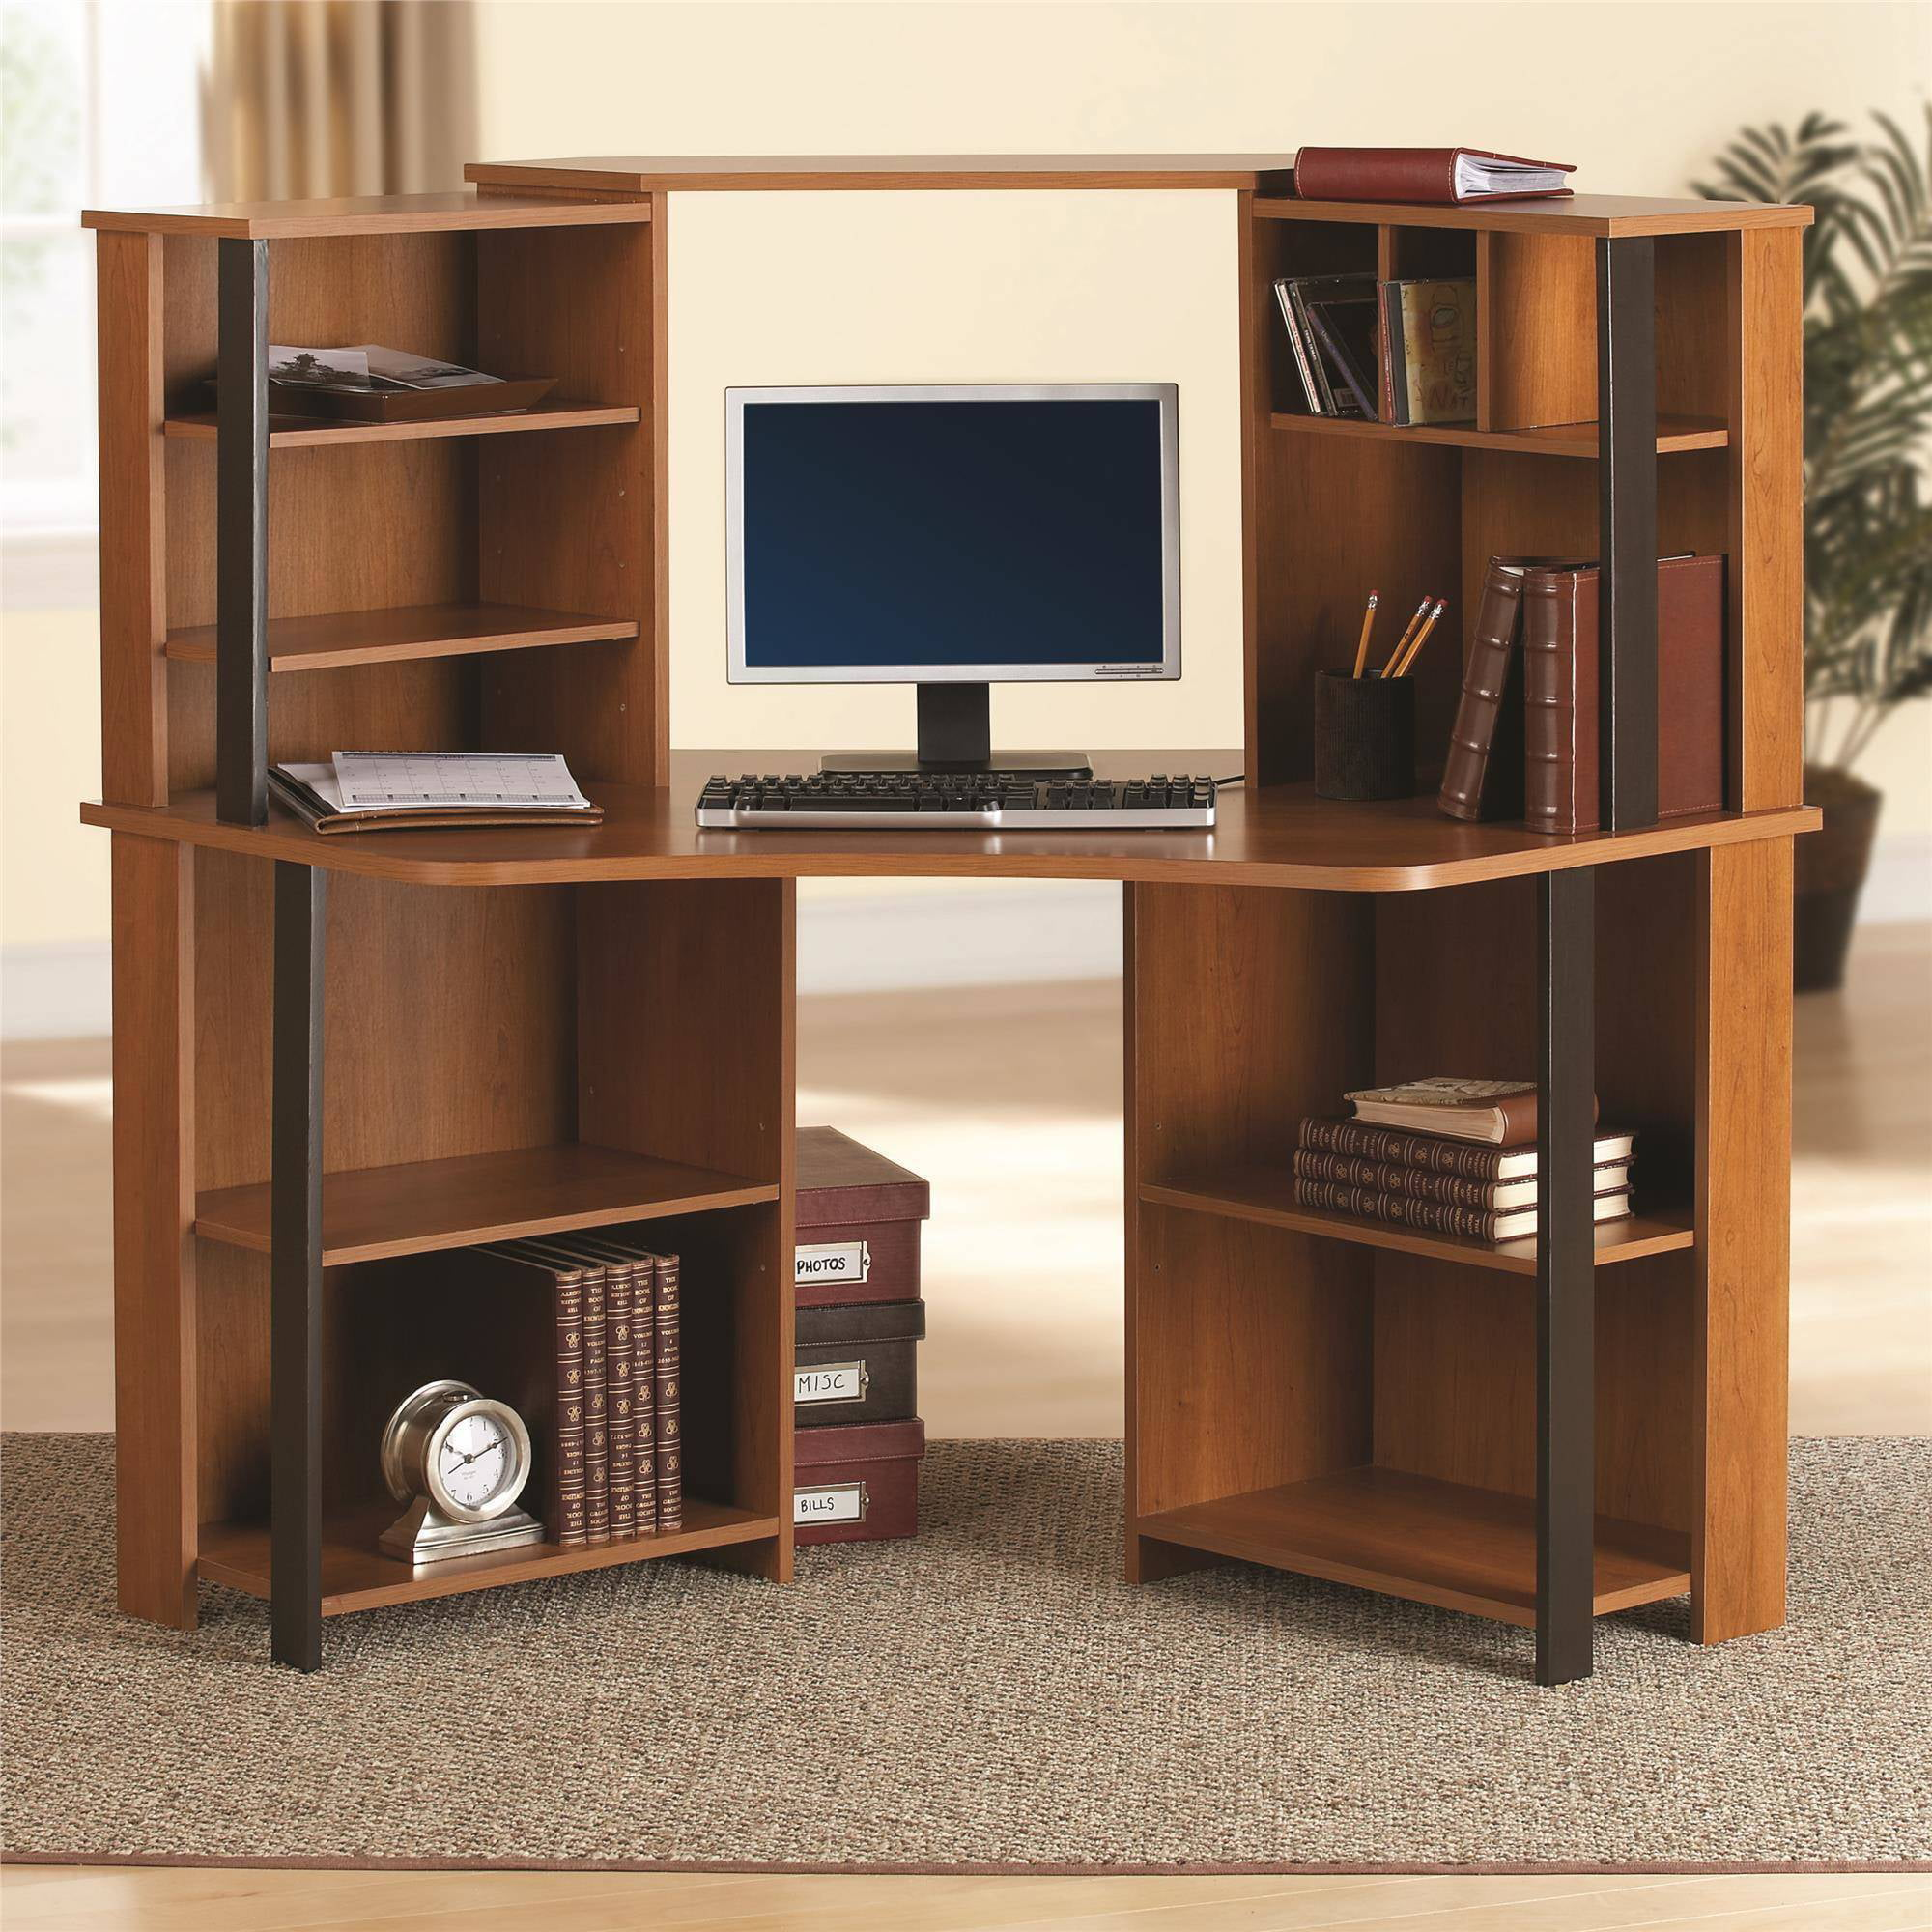 finish shelves desk board color composite storage desks maple simple great keyboard small cubby home pull out corner tray melamine wood with office computer